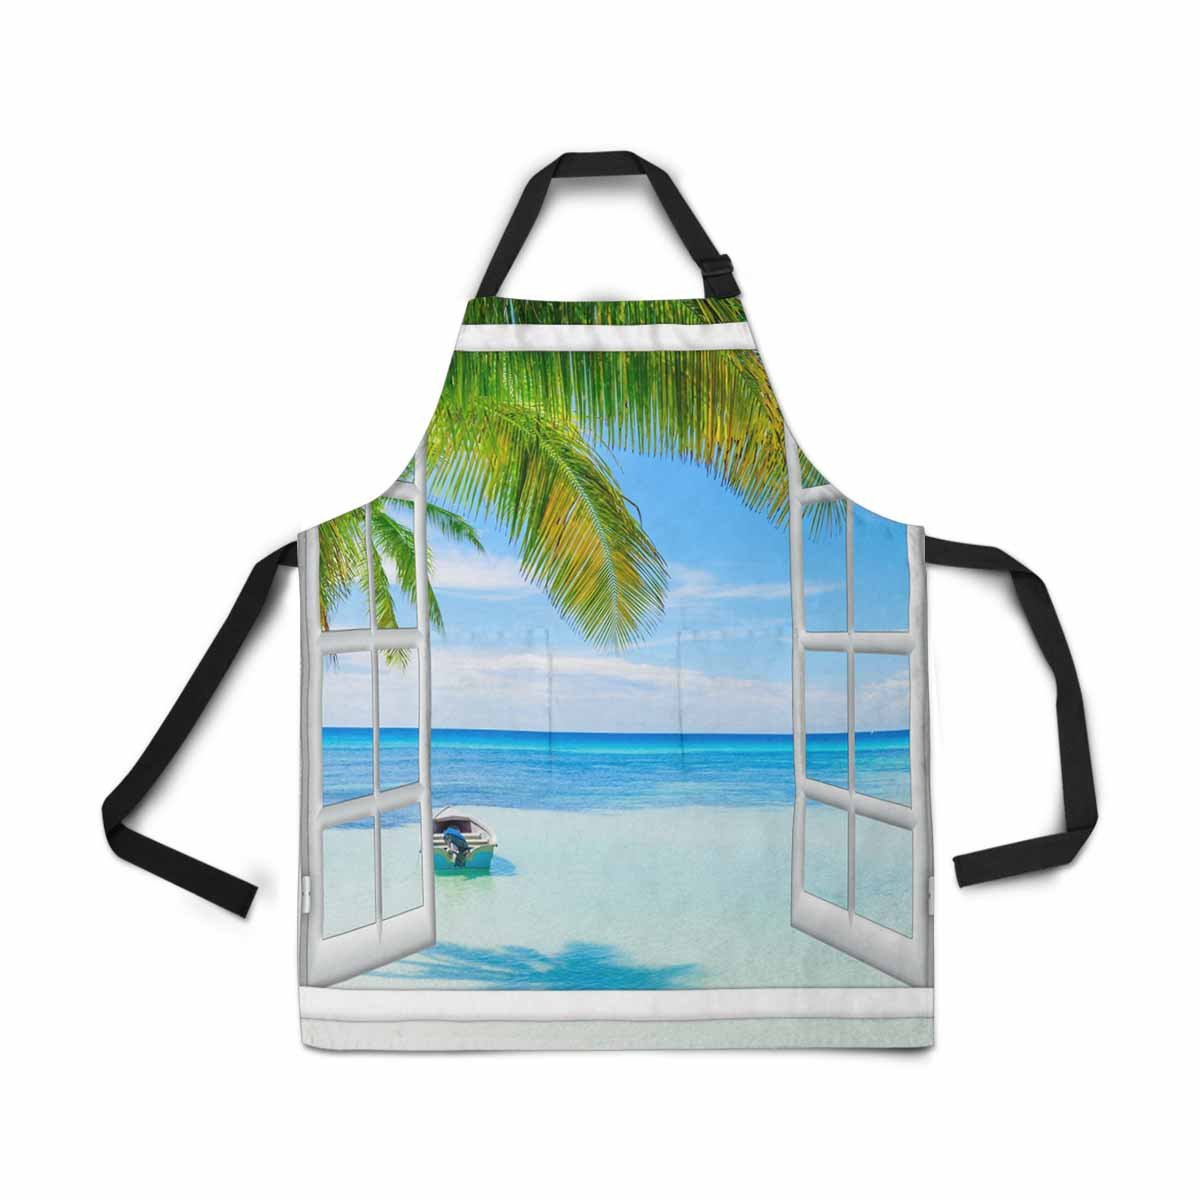 InterestPrint Adjustable Bib Apron for Women Men Girls Chef with Pockets, Open Window View Sea Good Weather Summer Novelty Kitchen Apron for Cooking Baking Gardening Pet Grooming Cleaning